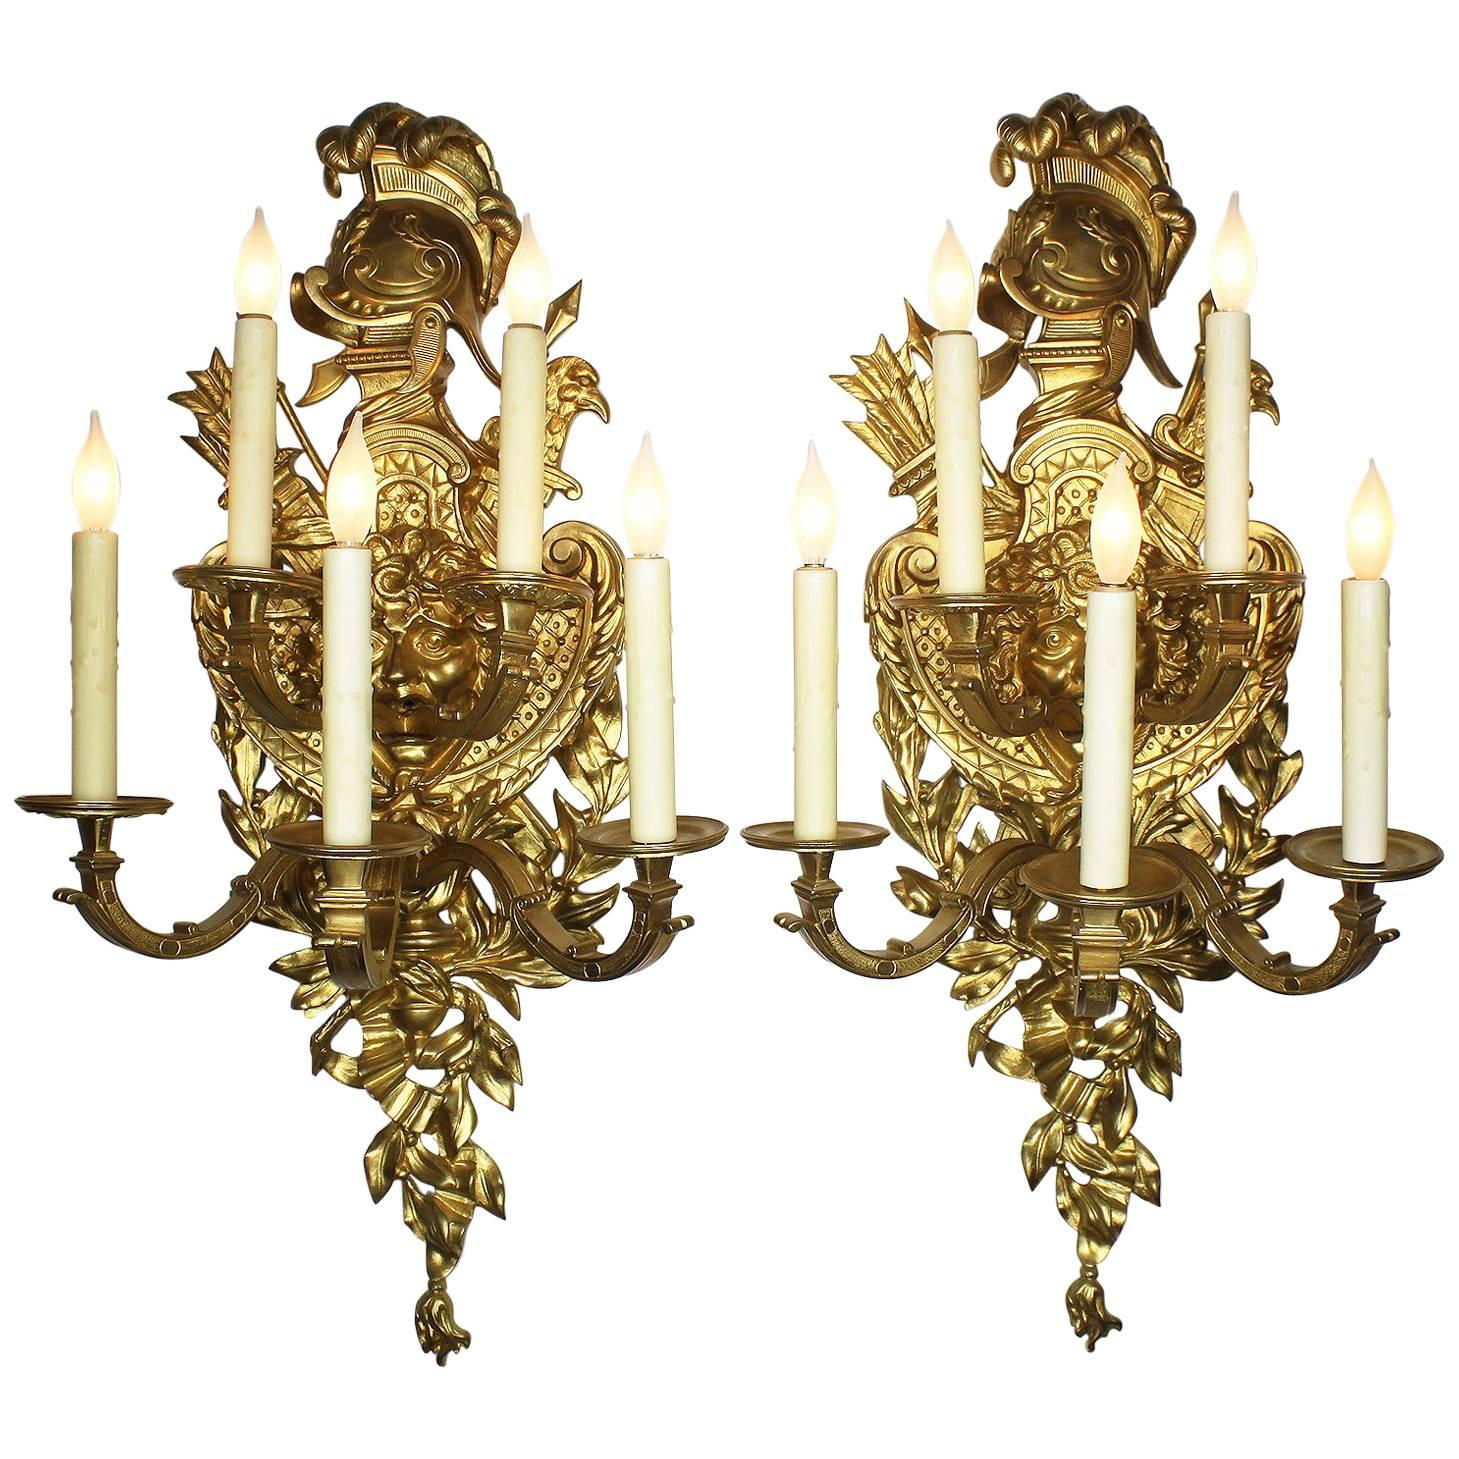 Torch Excellent Quality In Pair Antique Early 20th Century Neoclassical Gilt Bronze Sconces